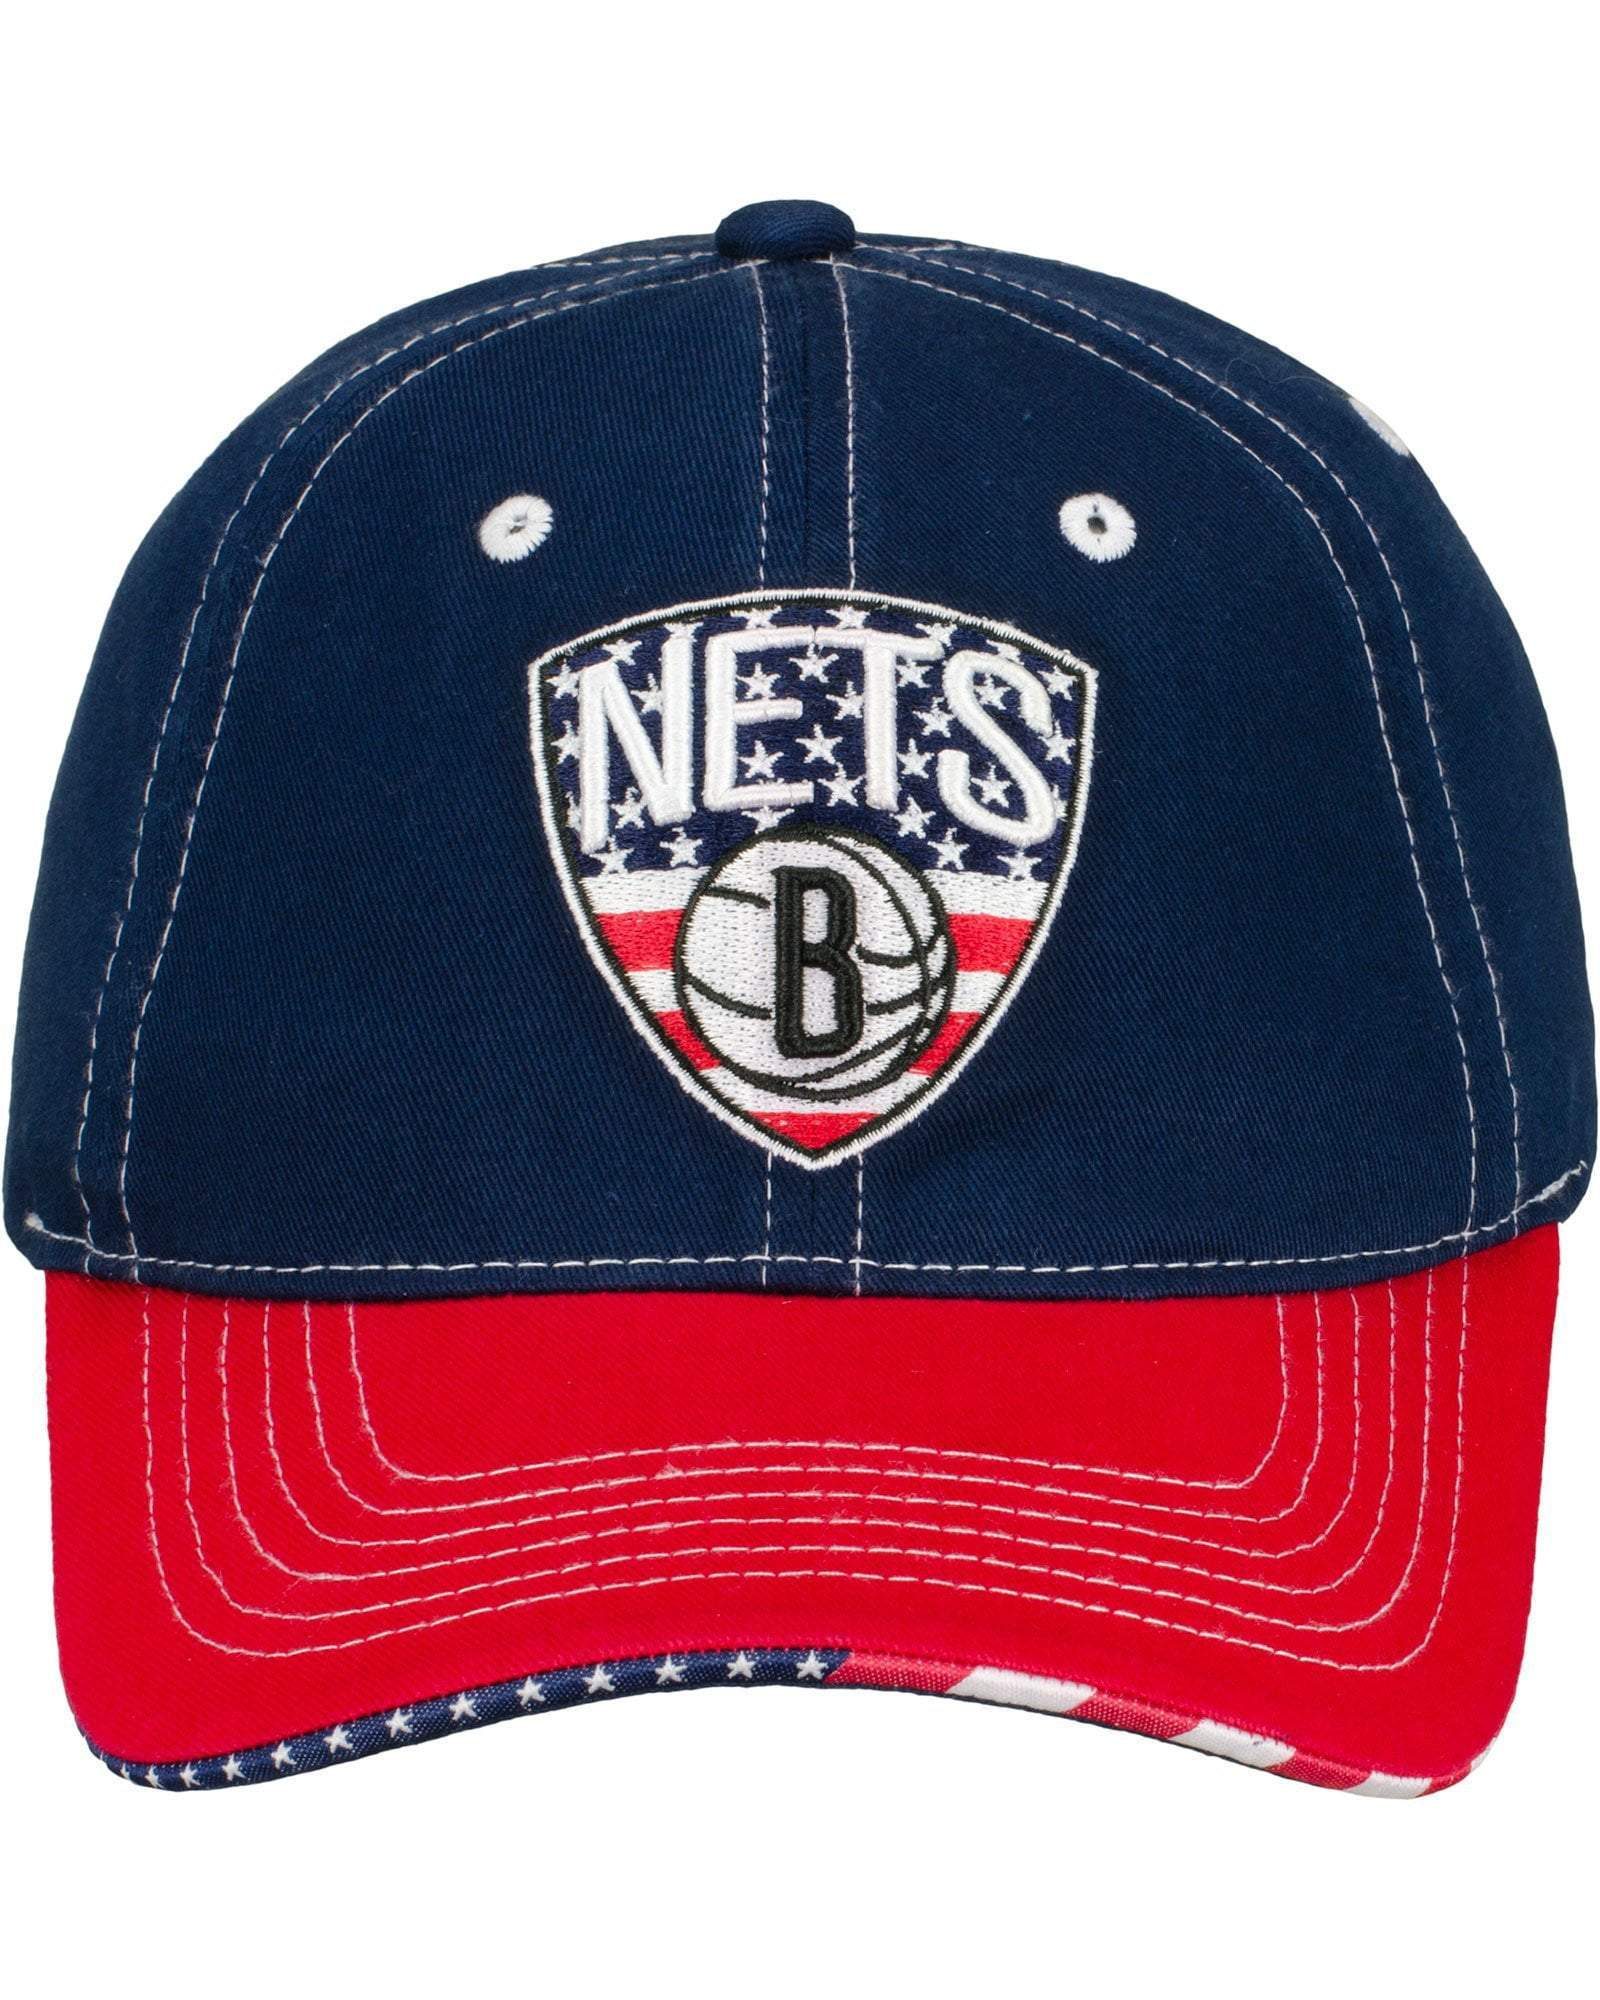 Brooklyn Nets Hats RED / ADJ Brooklyn Nets Item Of The Game Patriotic Logo Primary Logo Hat - Red/White/Blue